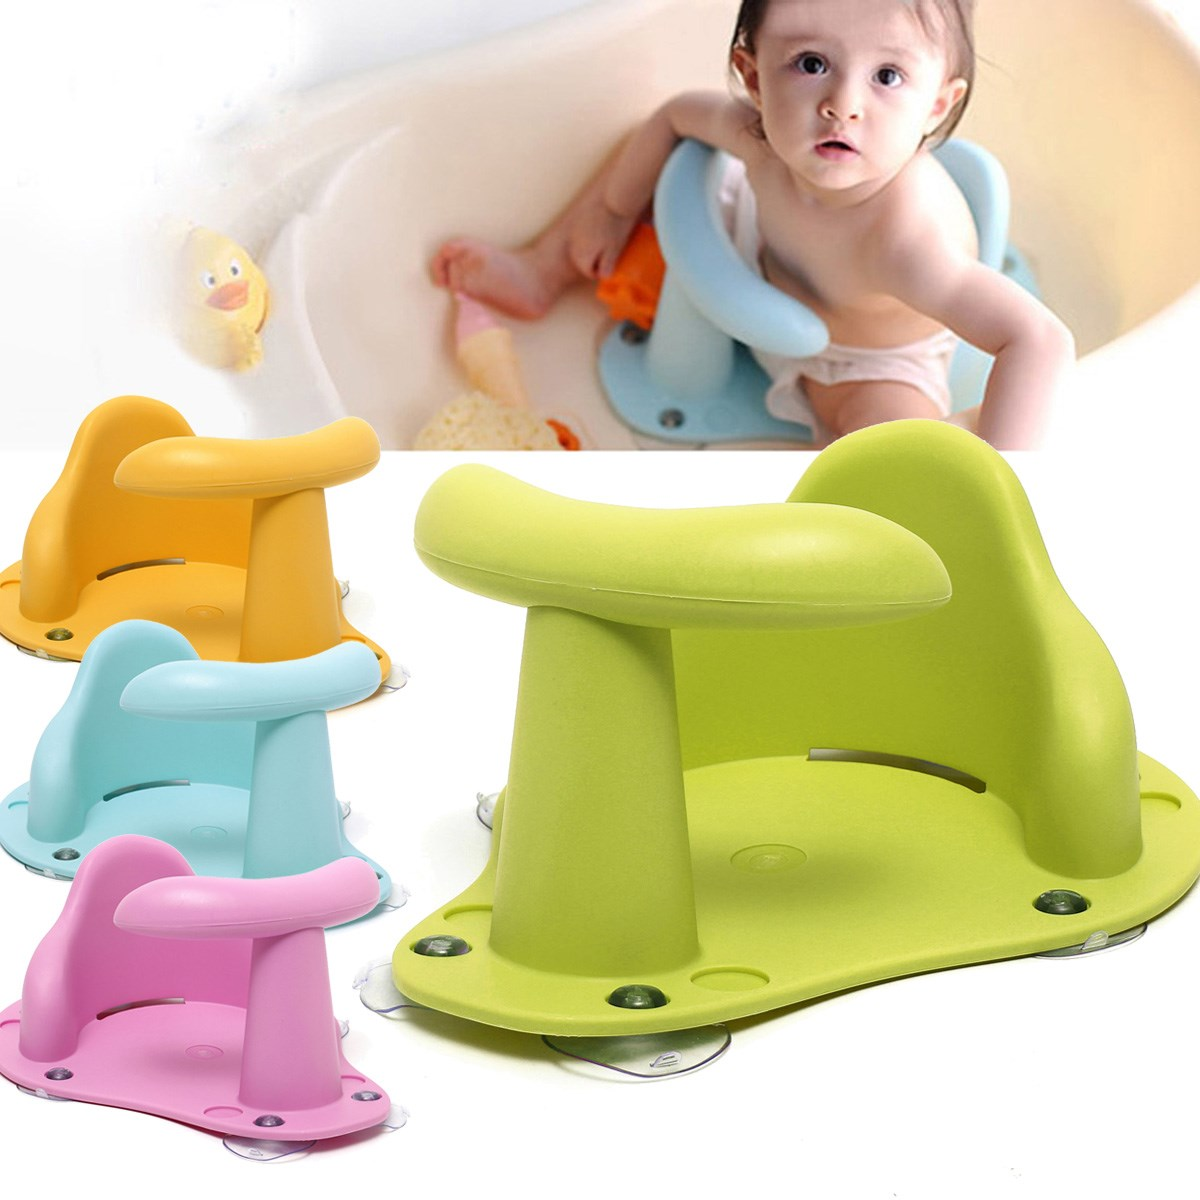 Baby Infant Kids Toddler Bath Seat Ring Non Slip Safety Chair Mat ...